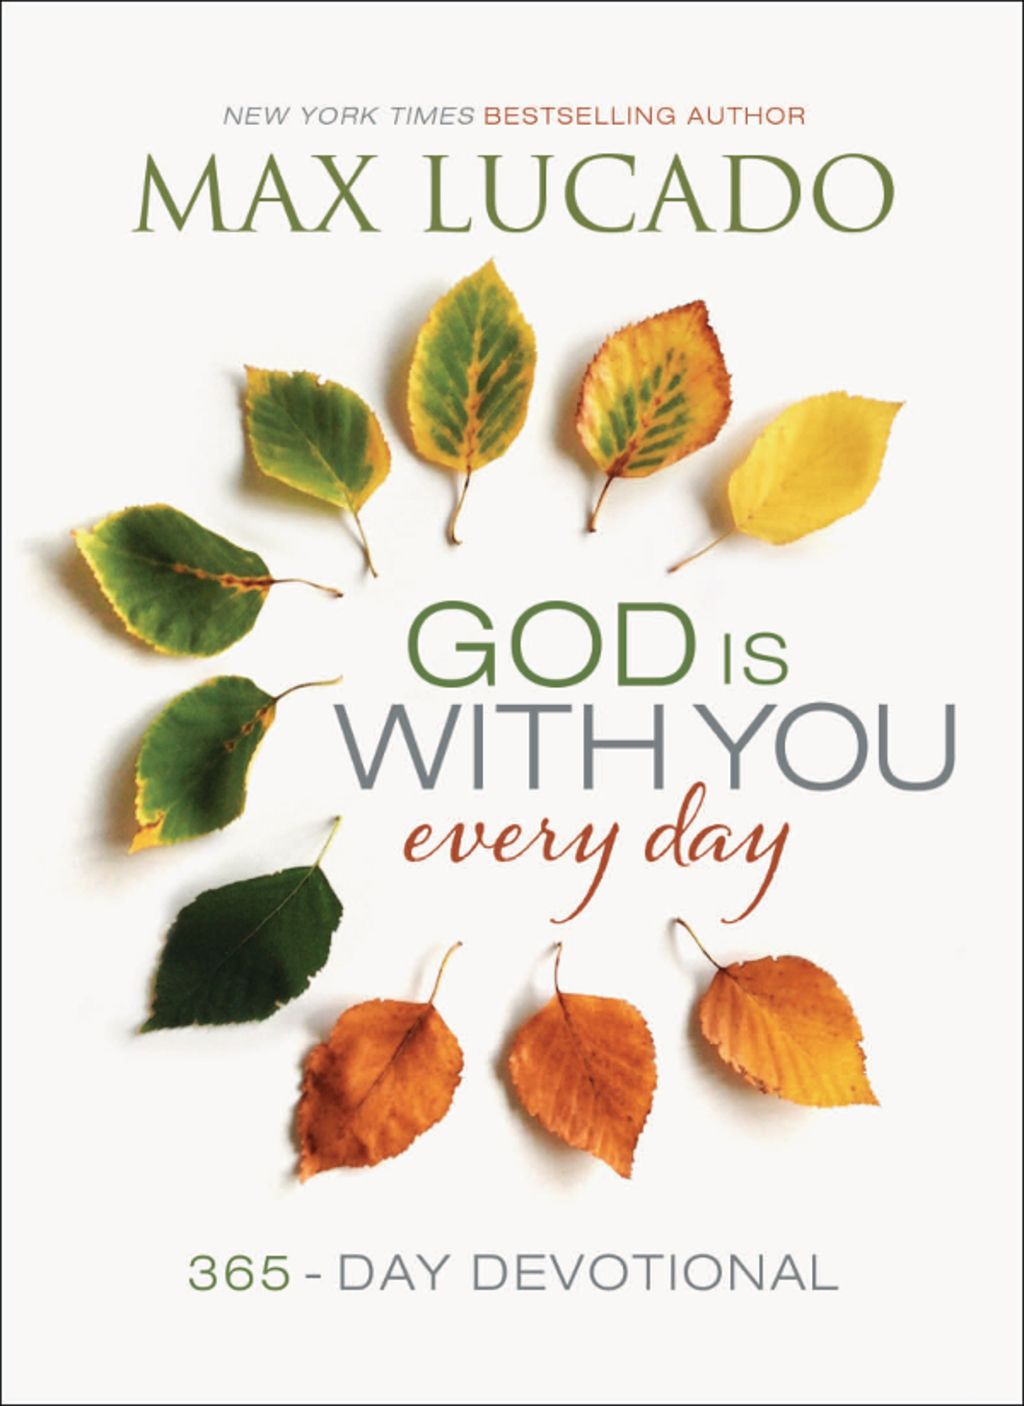 God Is With You Every Day (eBook) Max lucado, Max lucado